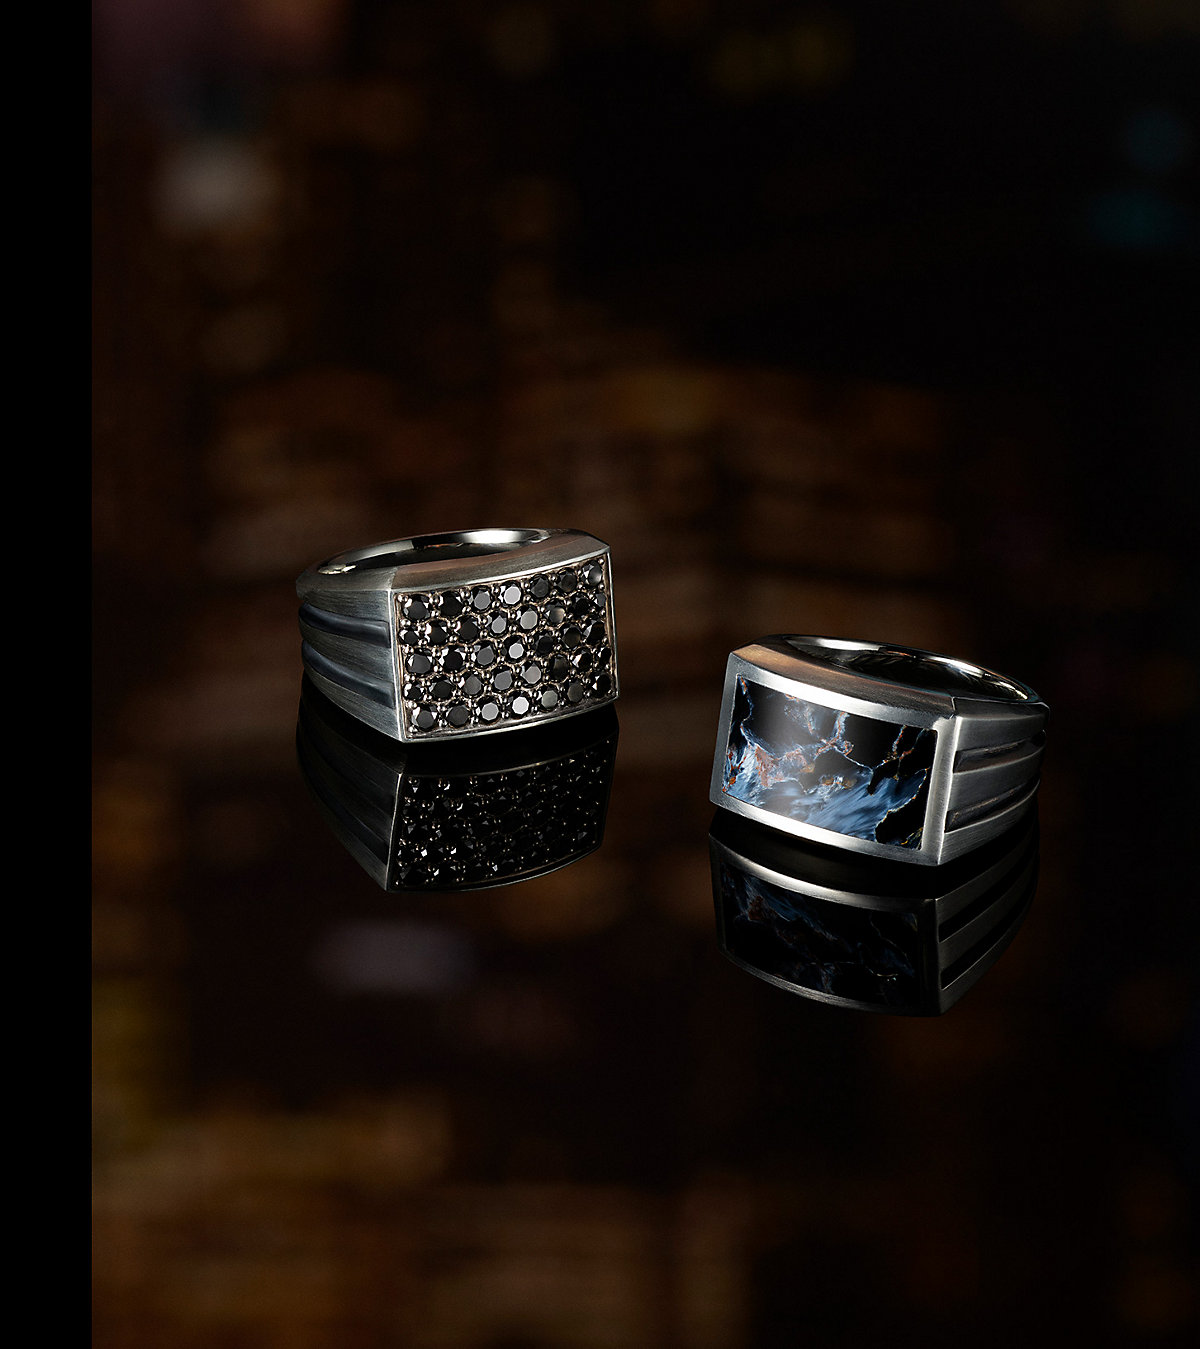 An image of two Beveled signet rings placed atop a dark reflective surface. The jewelry is crafted from sterling silver with pavé black diamonds or pietersite.